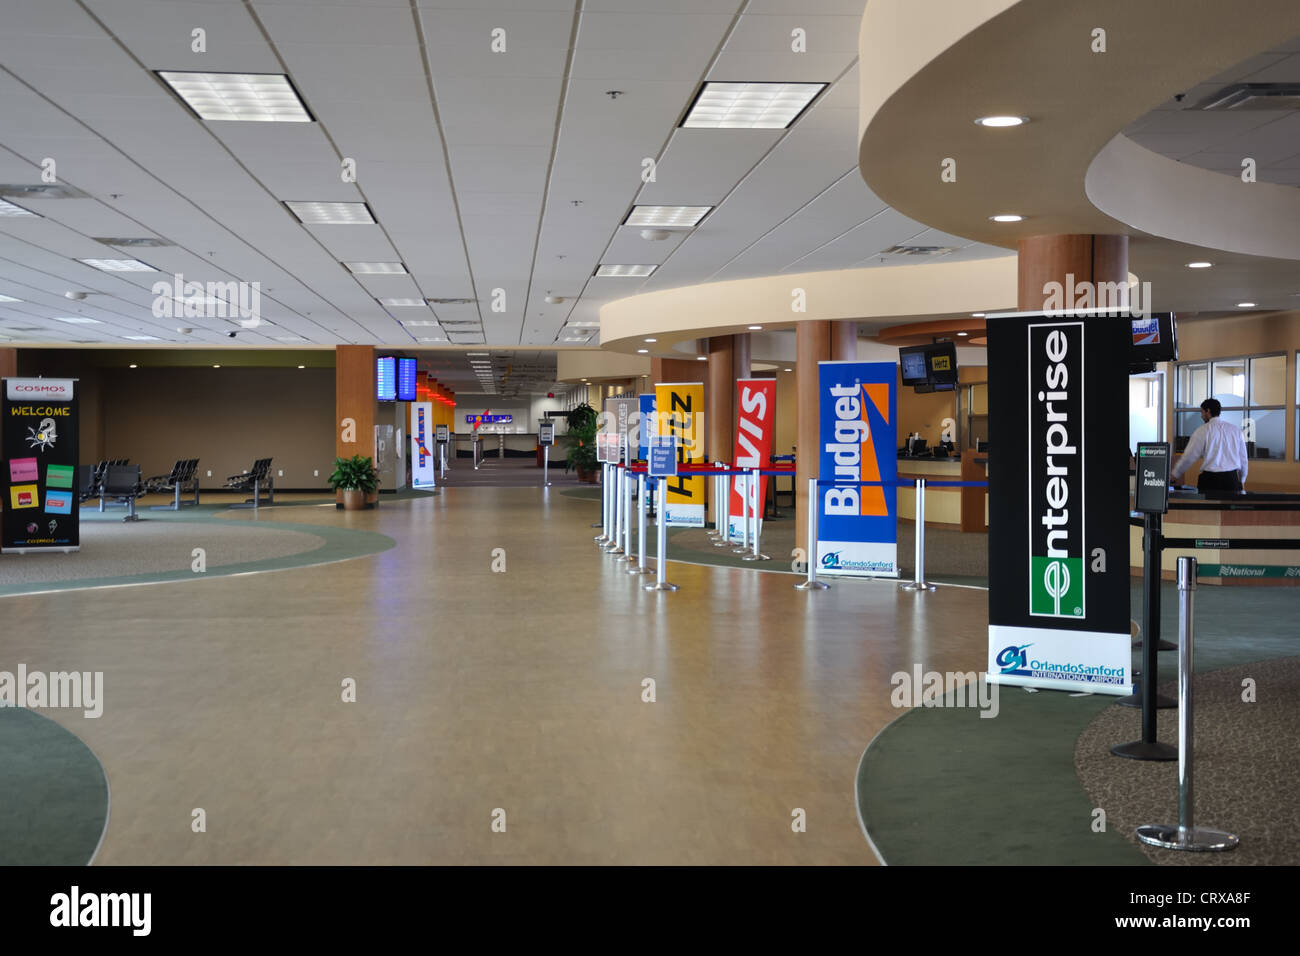 Denver International Airport has more than 10 major rental car companies serving Colorado travelers. Car rental agencies are located on airport property and provide courtesy shuttle service to and from Jeppesen Terminal.